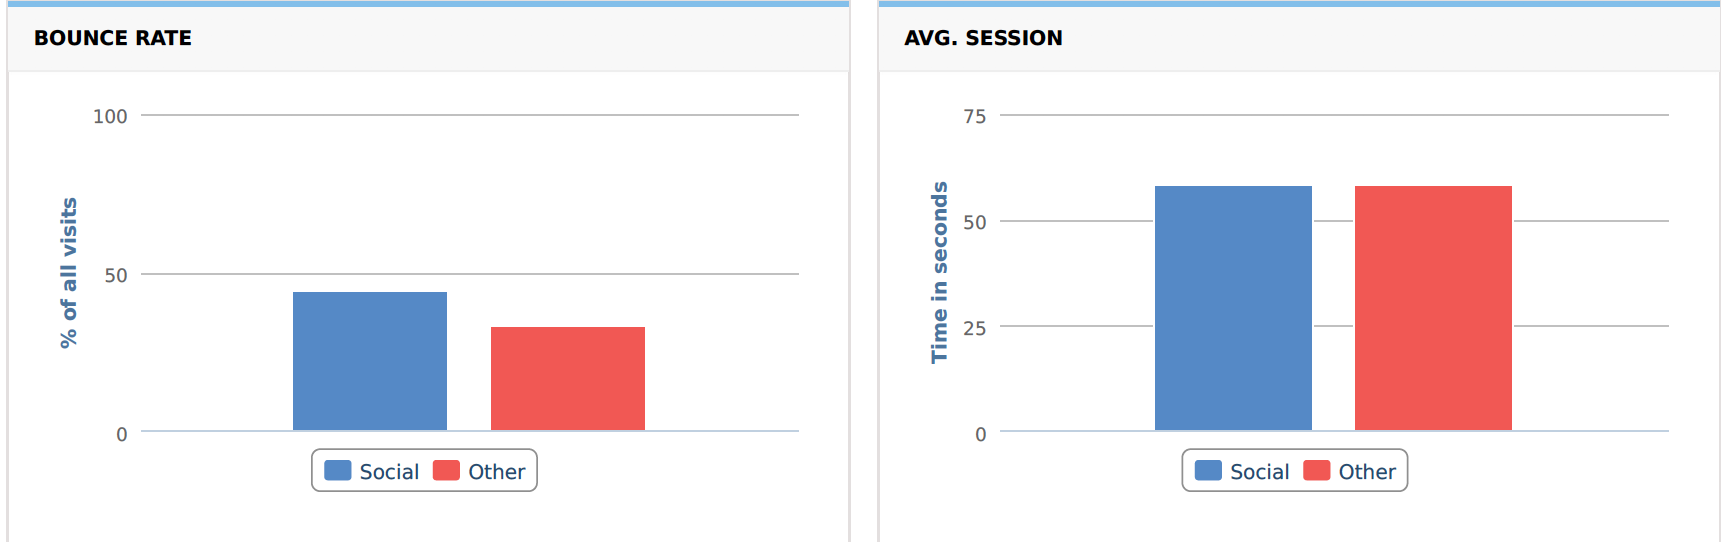 Bounce Rate and AVG Session